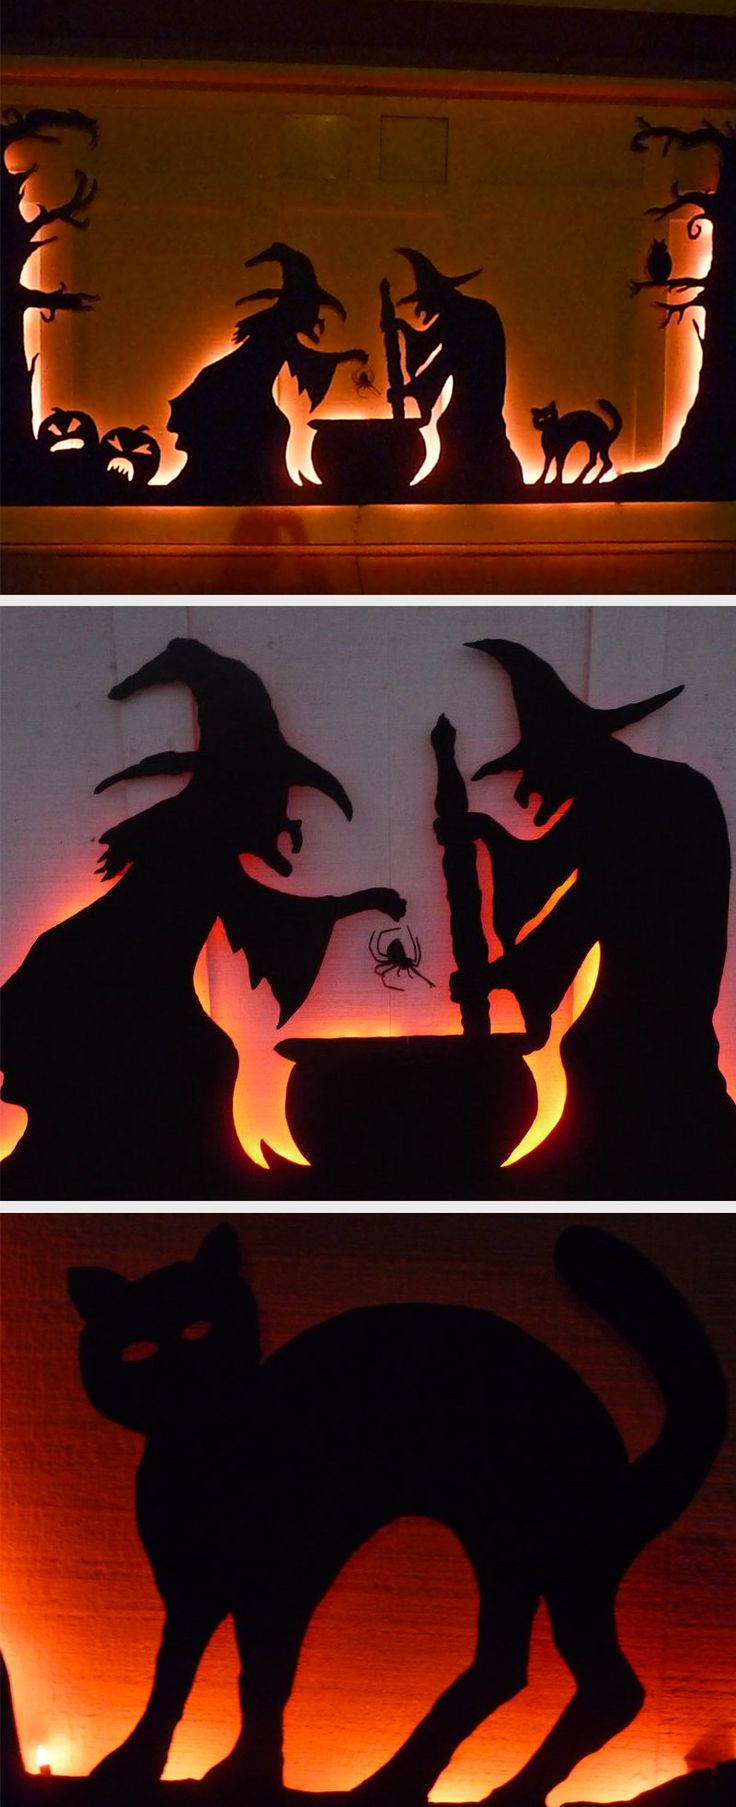 Halloween yard decorations diy - All You Need Is Plywood String Lights To Create This Simple But Classic Halloween Decoration